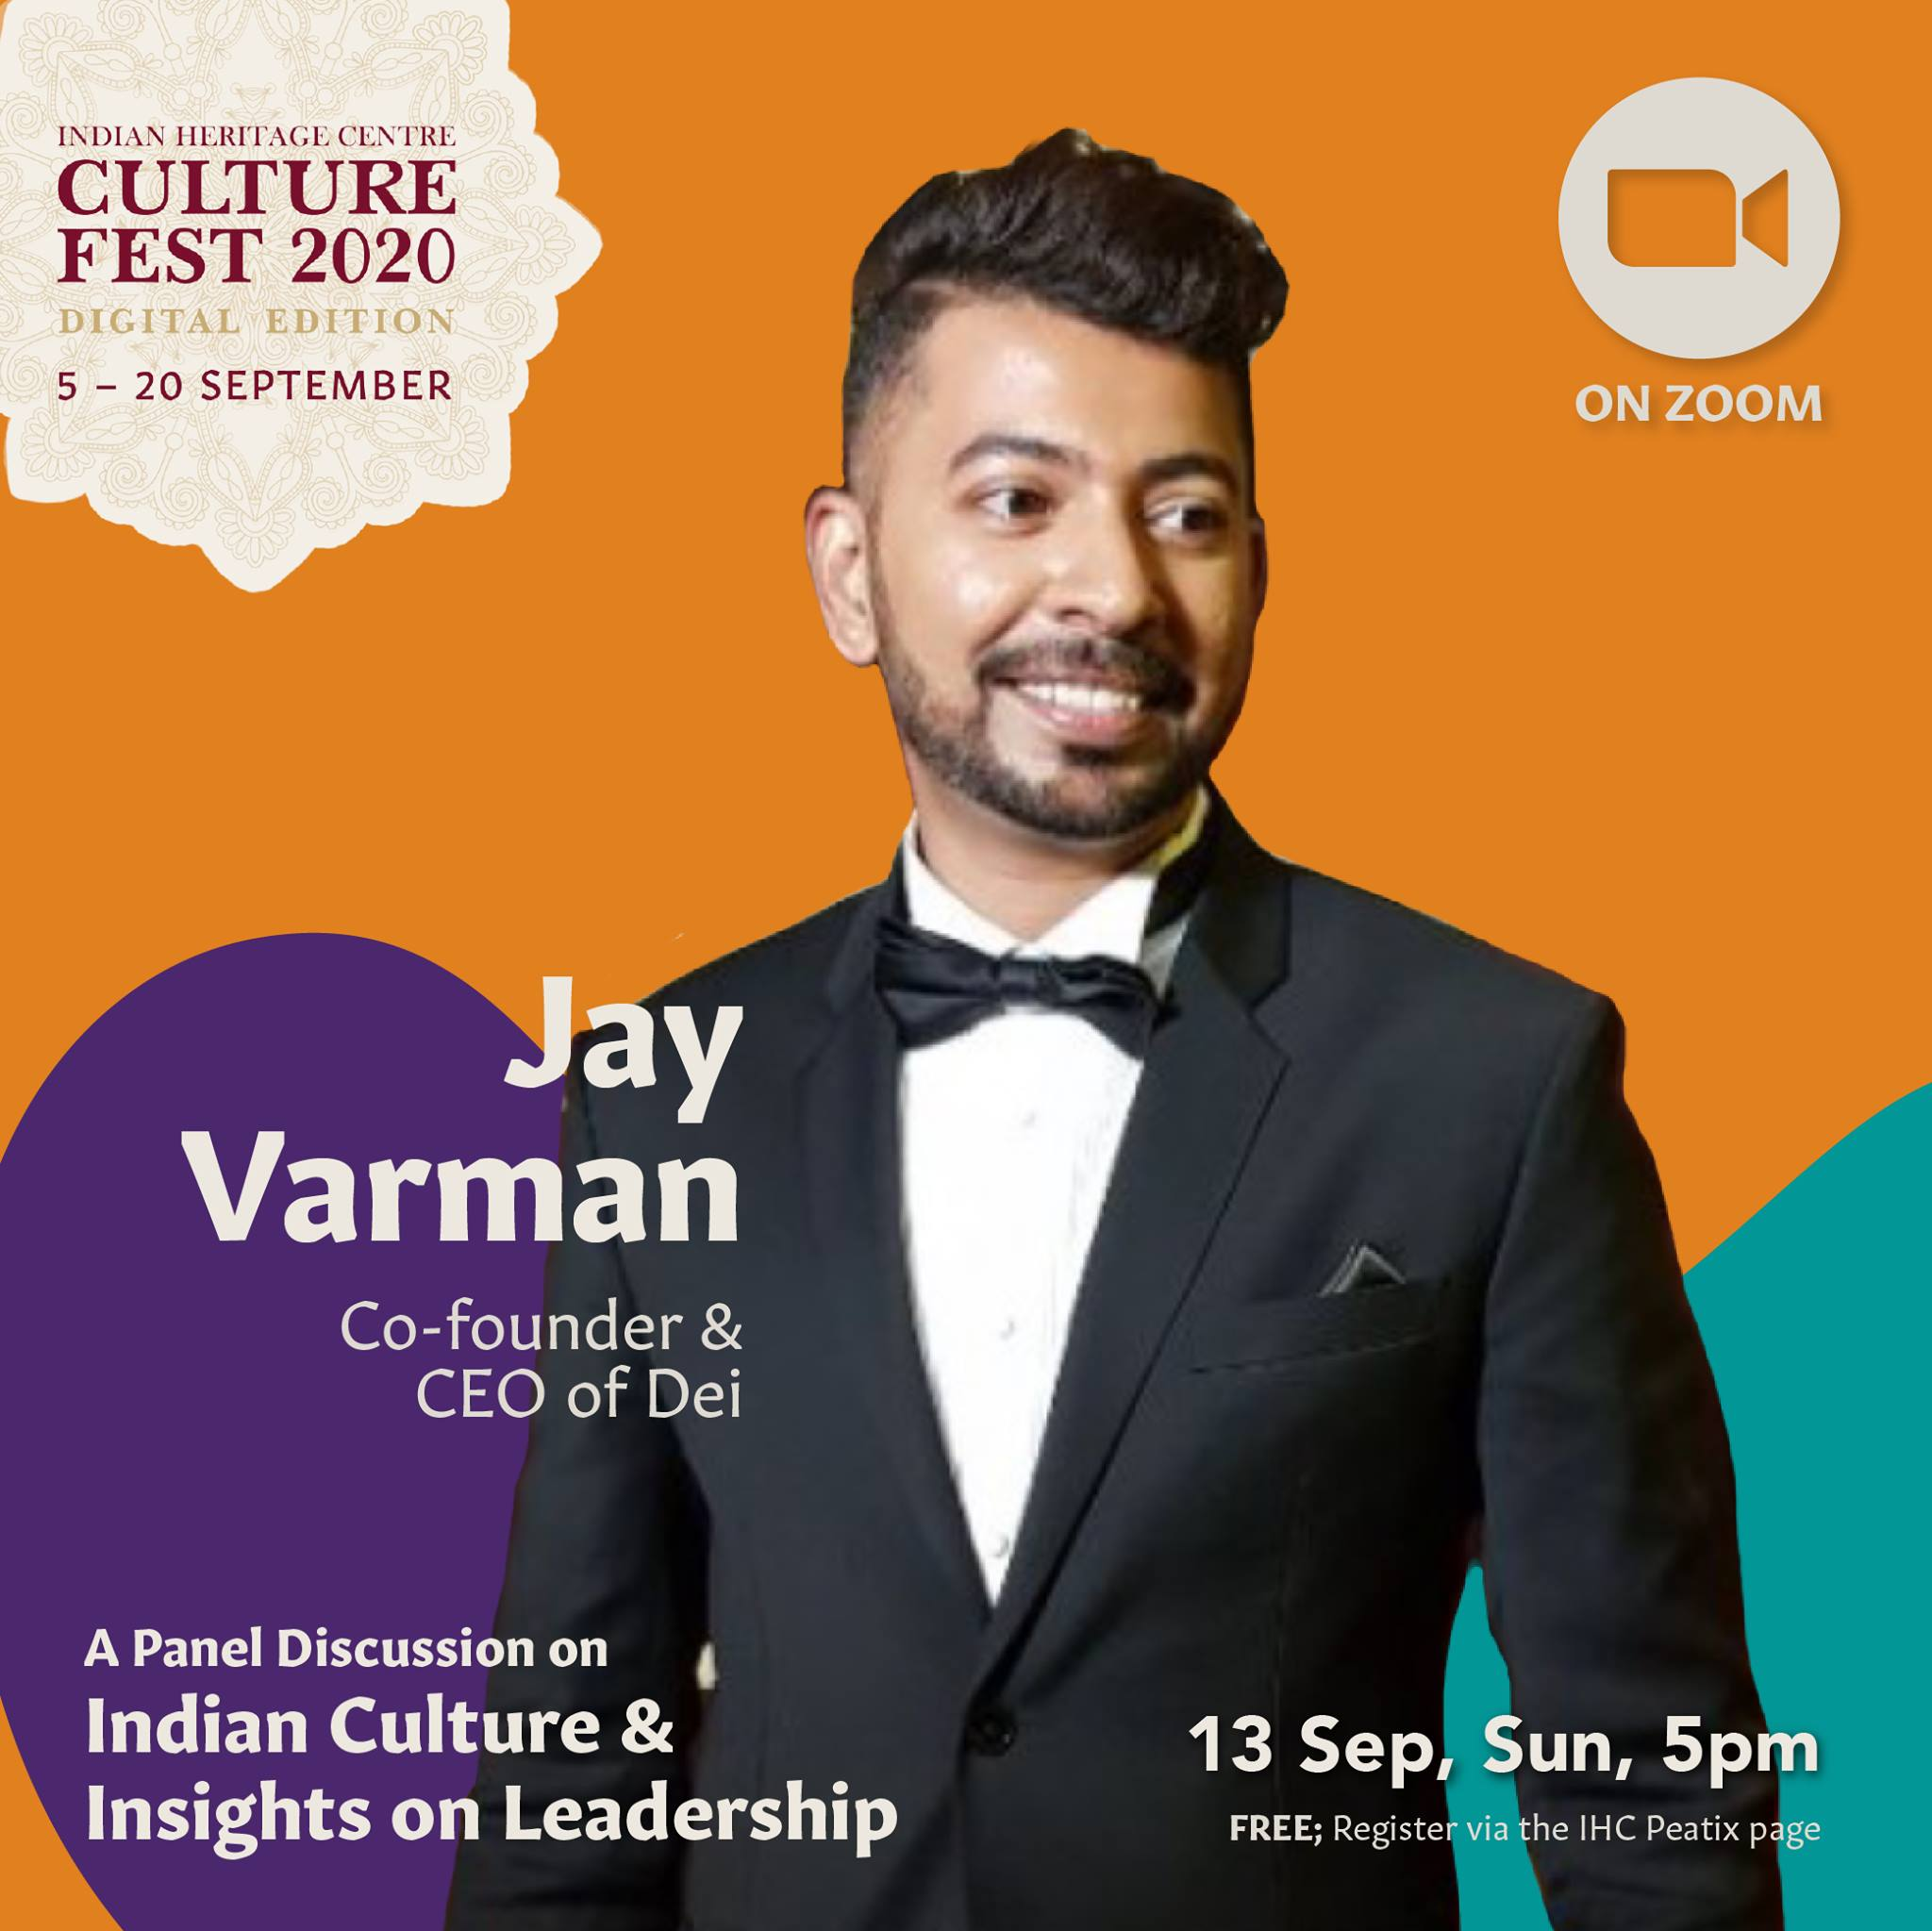 Jayavarman Gnanasekaran - is the CEO of Dei Holdings which he founded and recipient of Young Entrepreneur Award 2019 at the SICCI Awards. Photo Courtesy: IHC